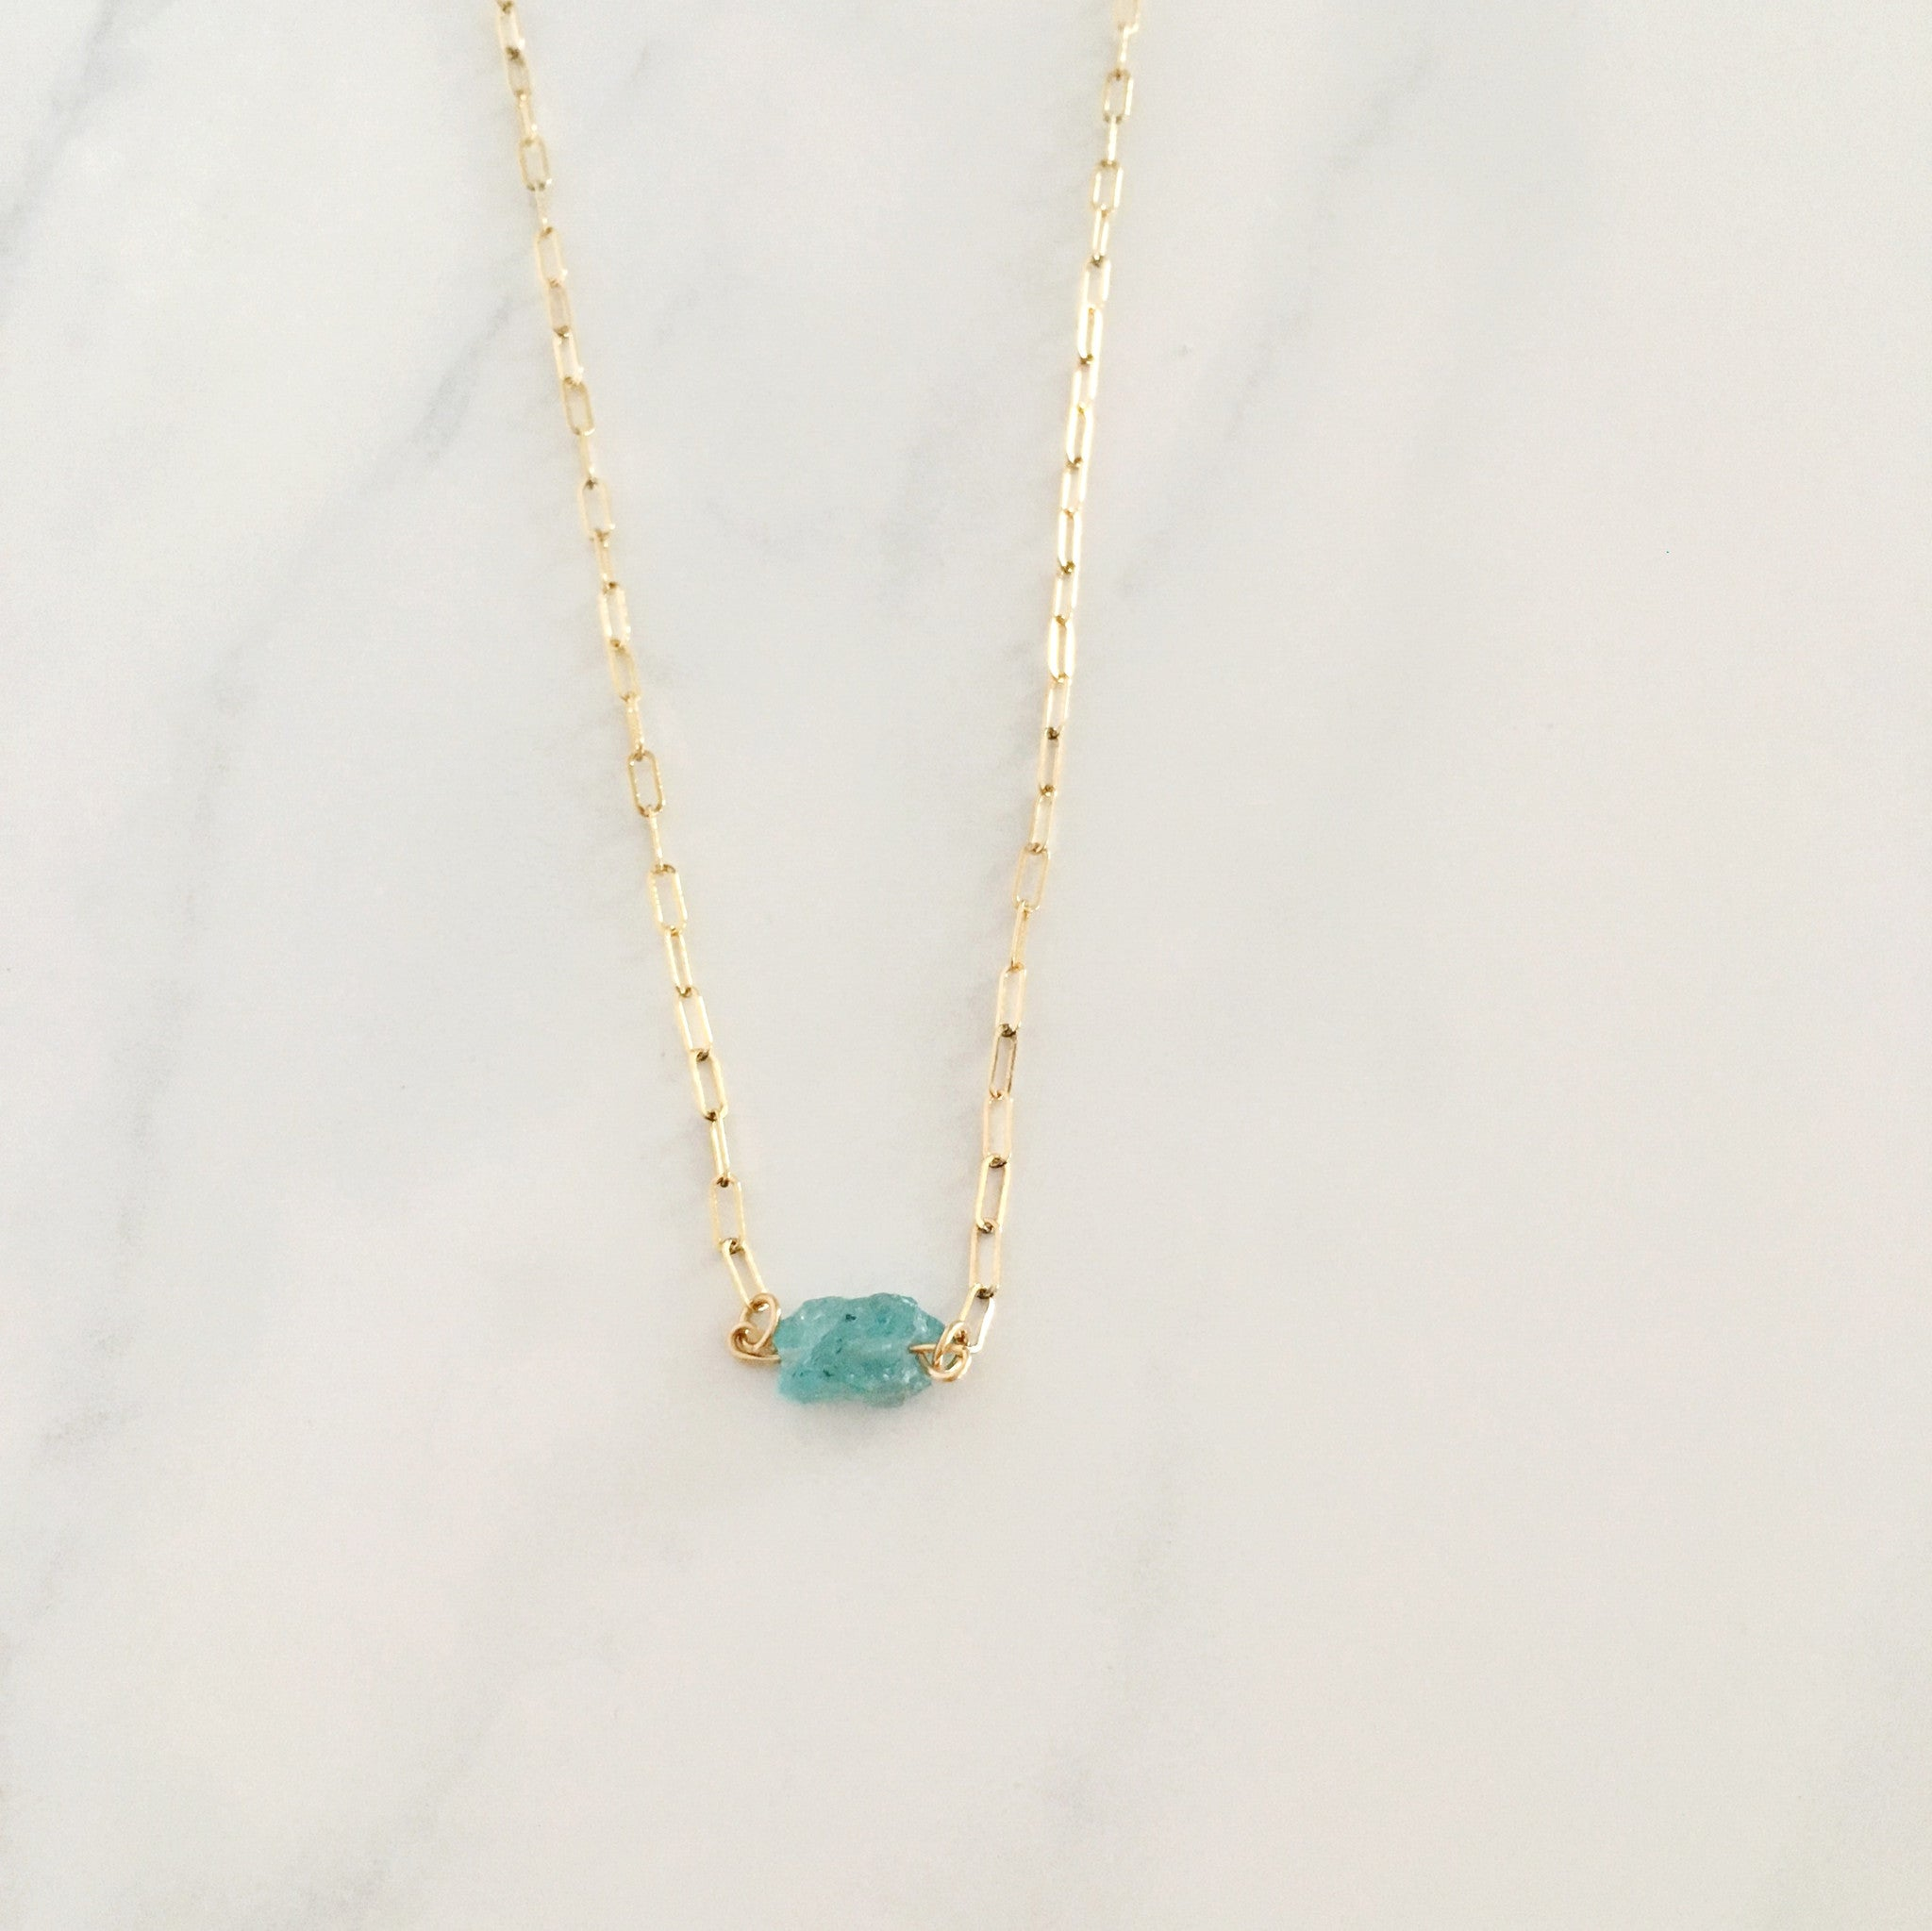 aquamarine healing crystal necklace